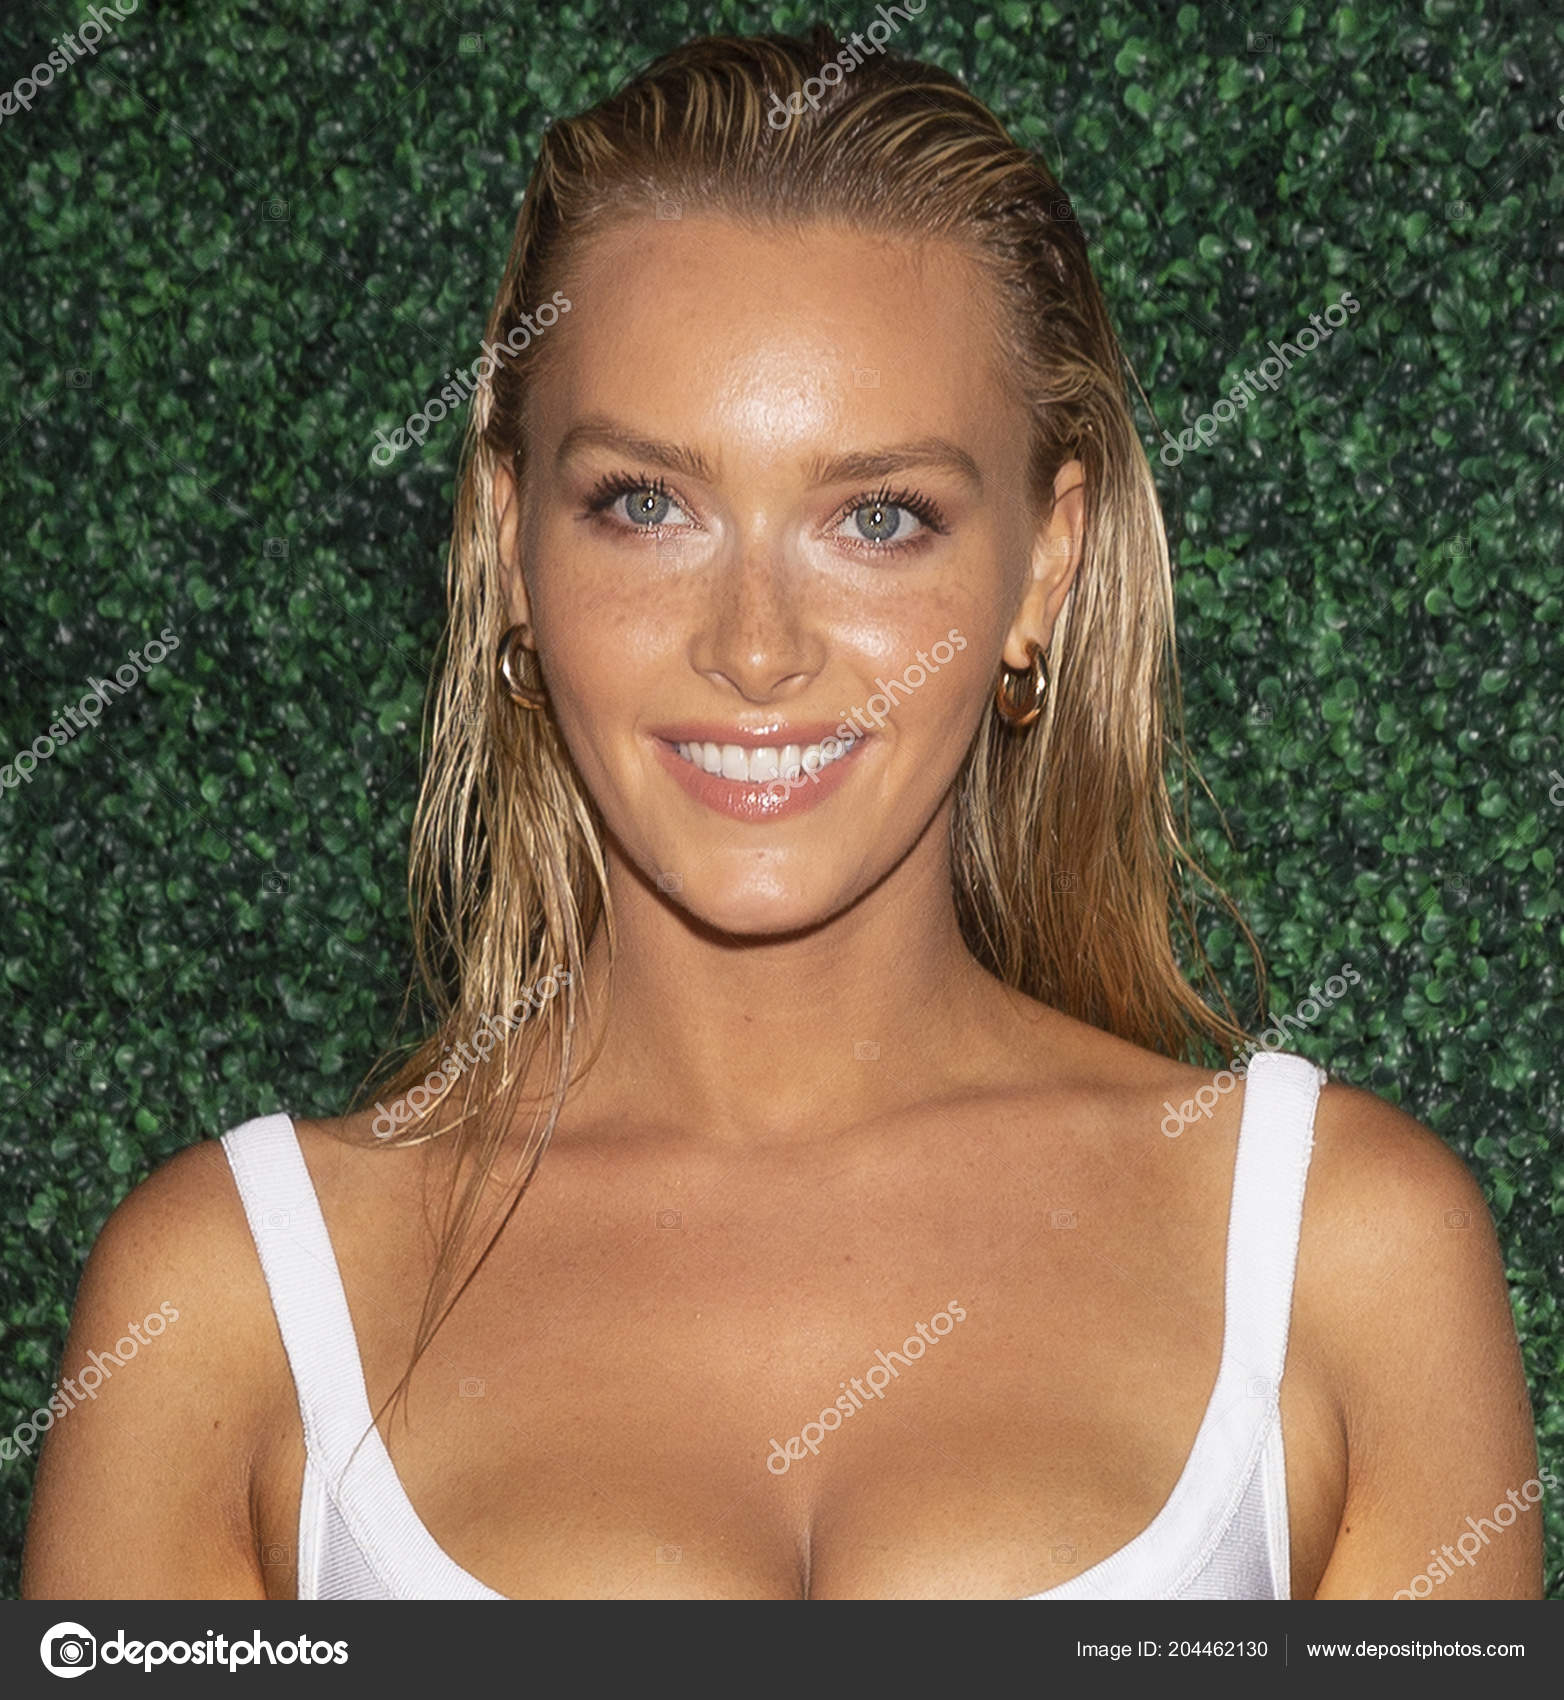 Camille Kostek Swimsuit Model: Miami Beach July 2018 Camille Kostek Attends 2018 Sports